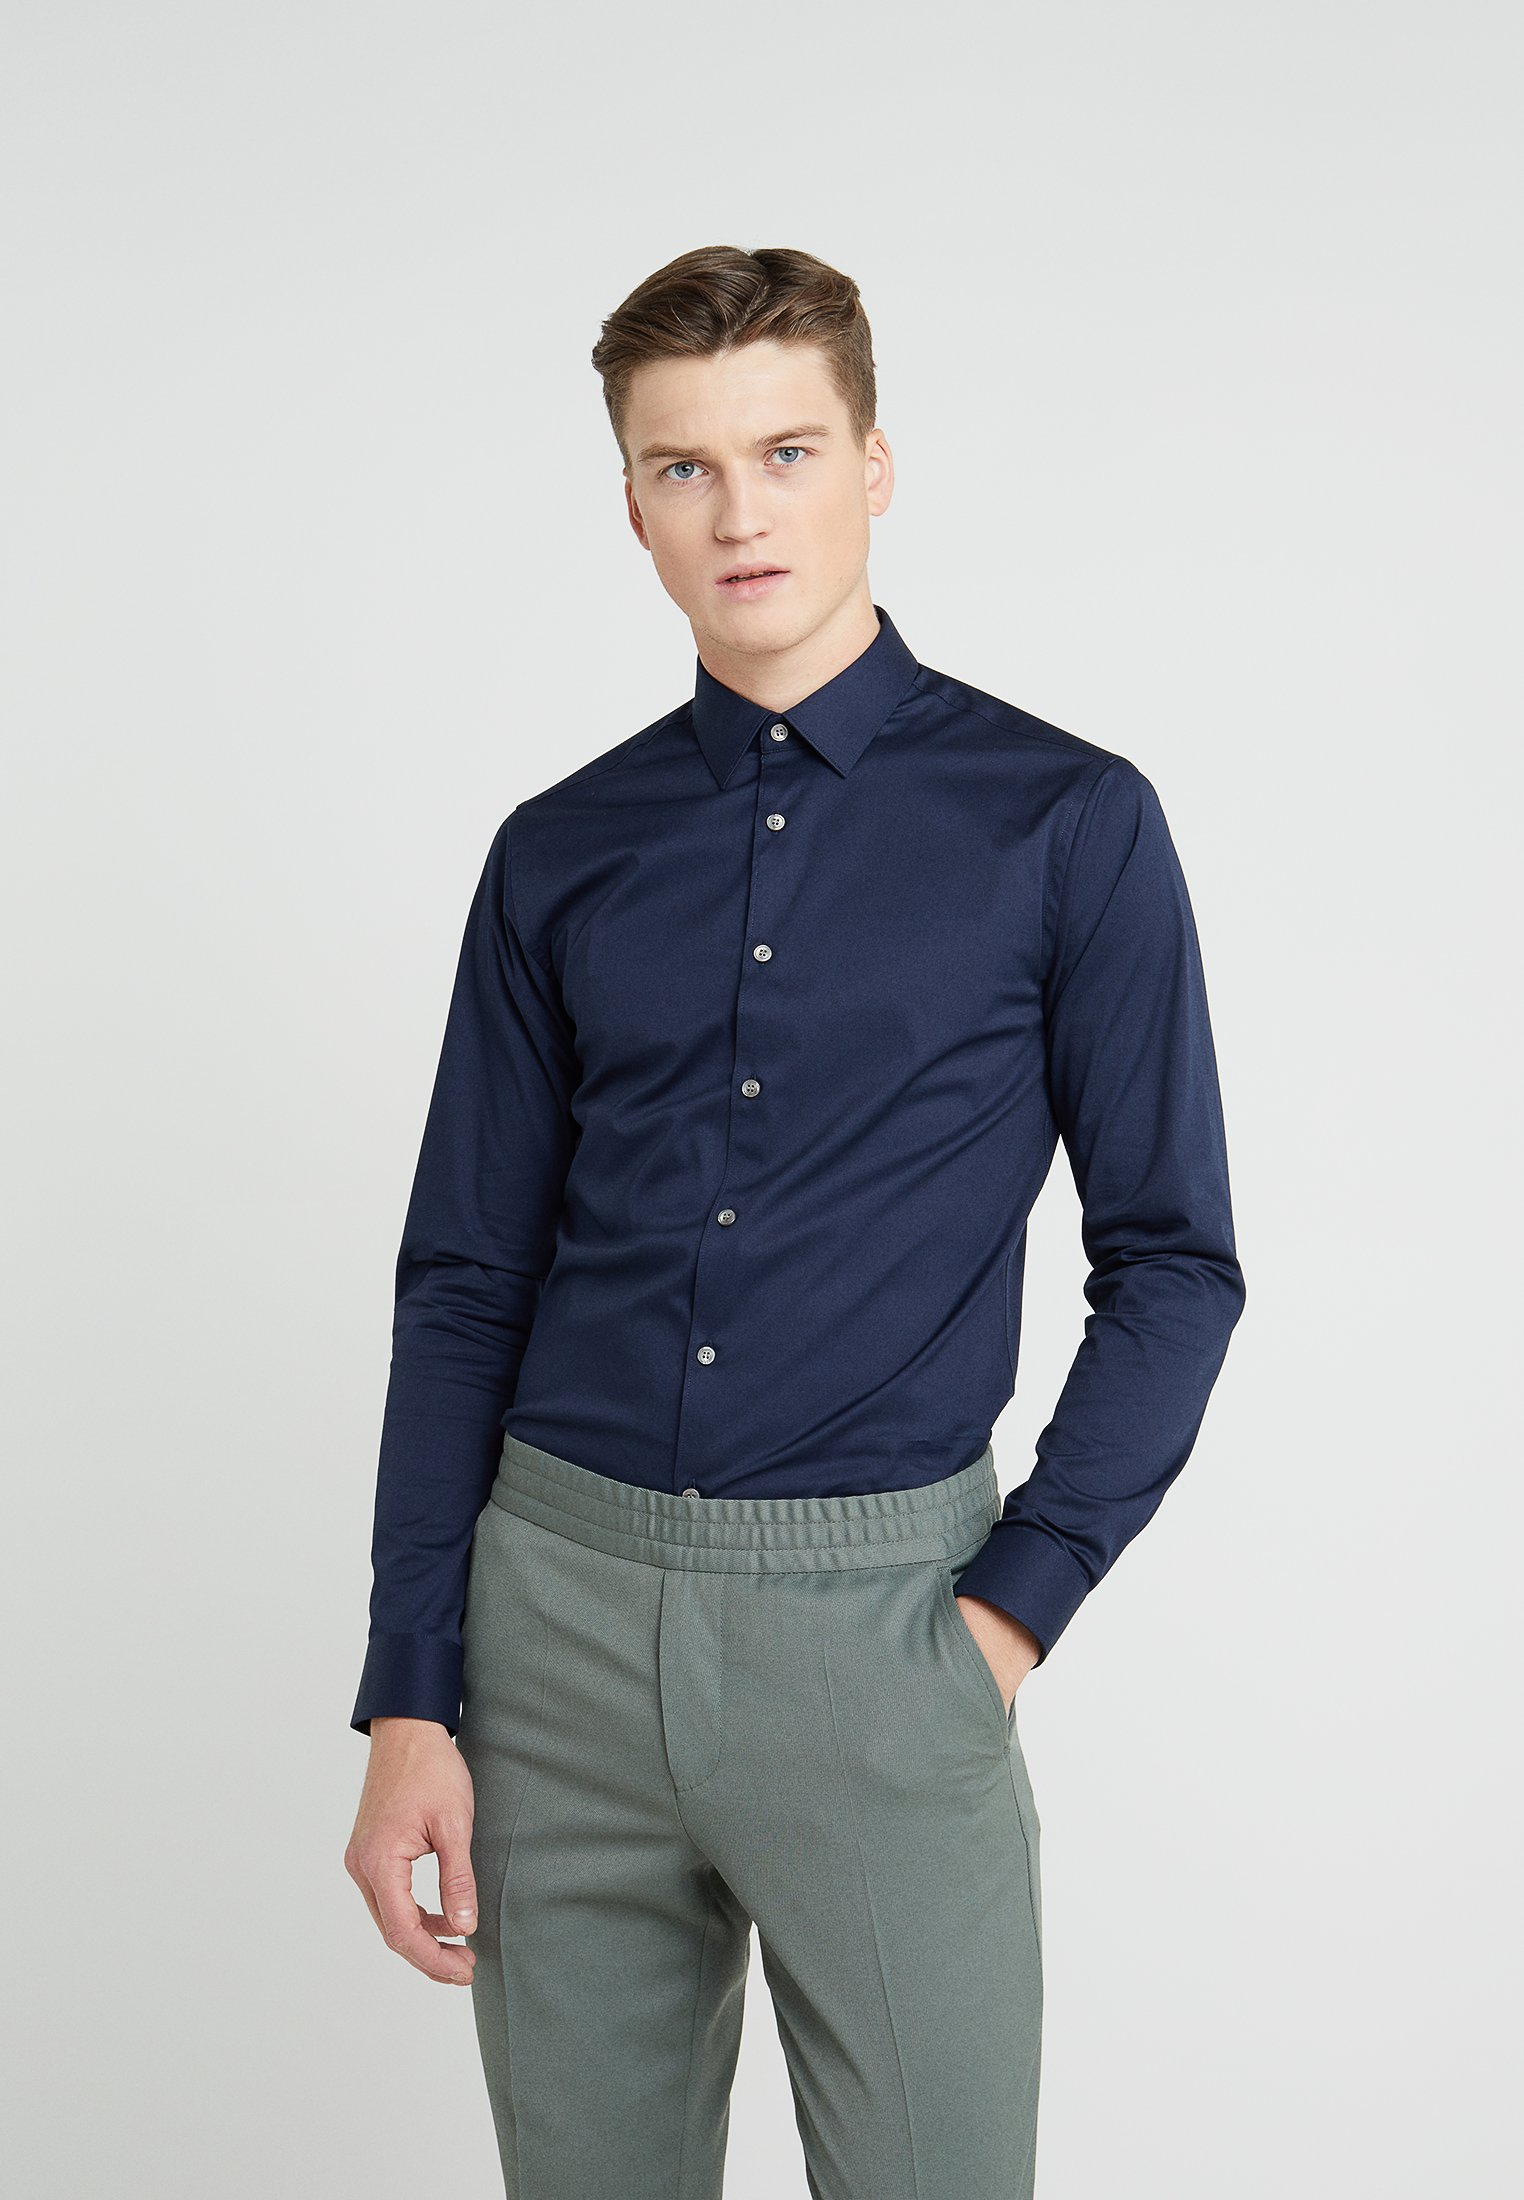 Homme FILBRODIE EXTRA SLIM FIT - Chemise classique